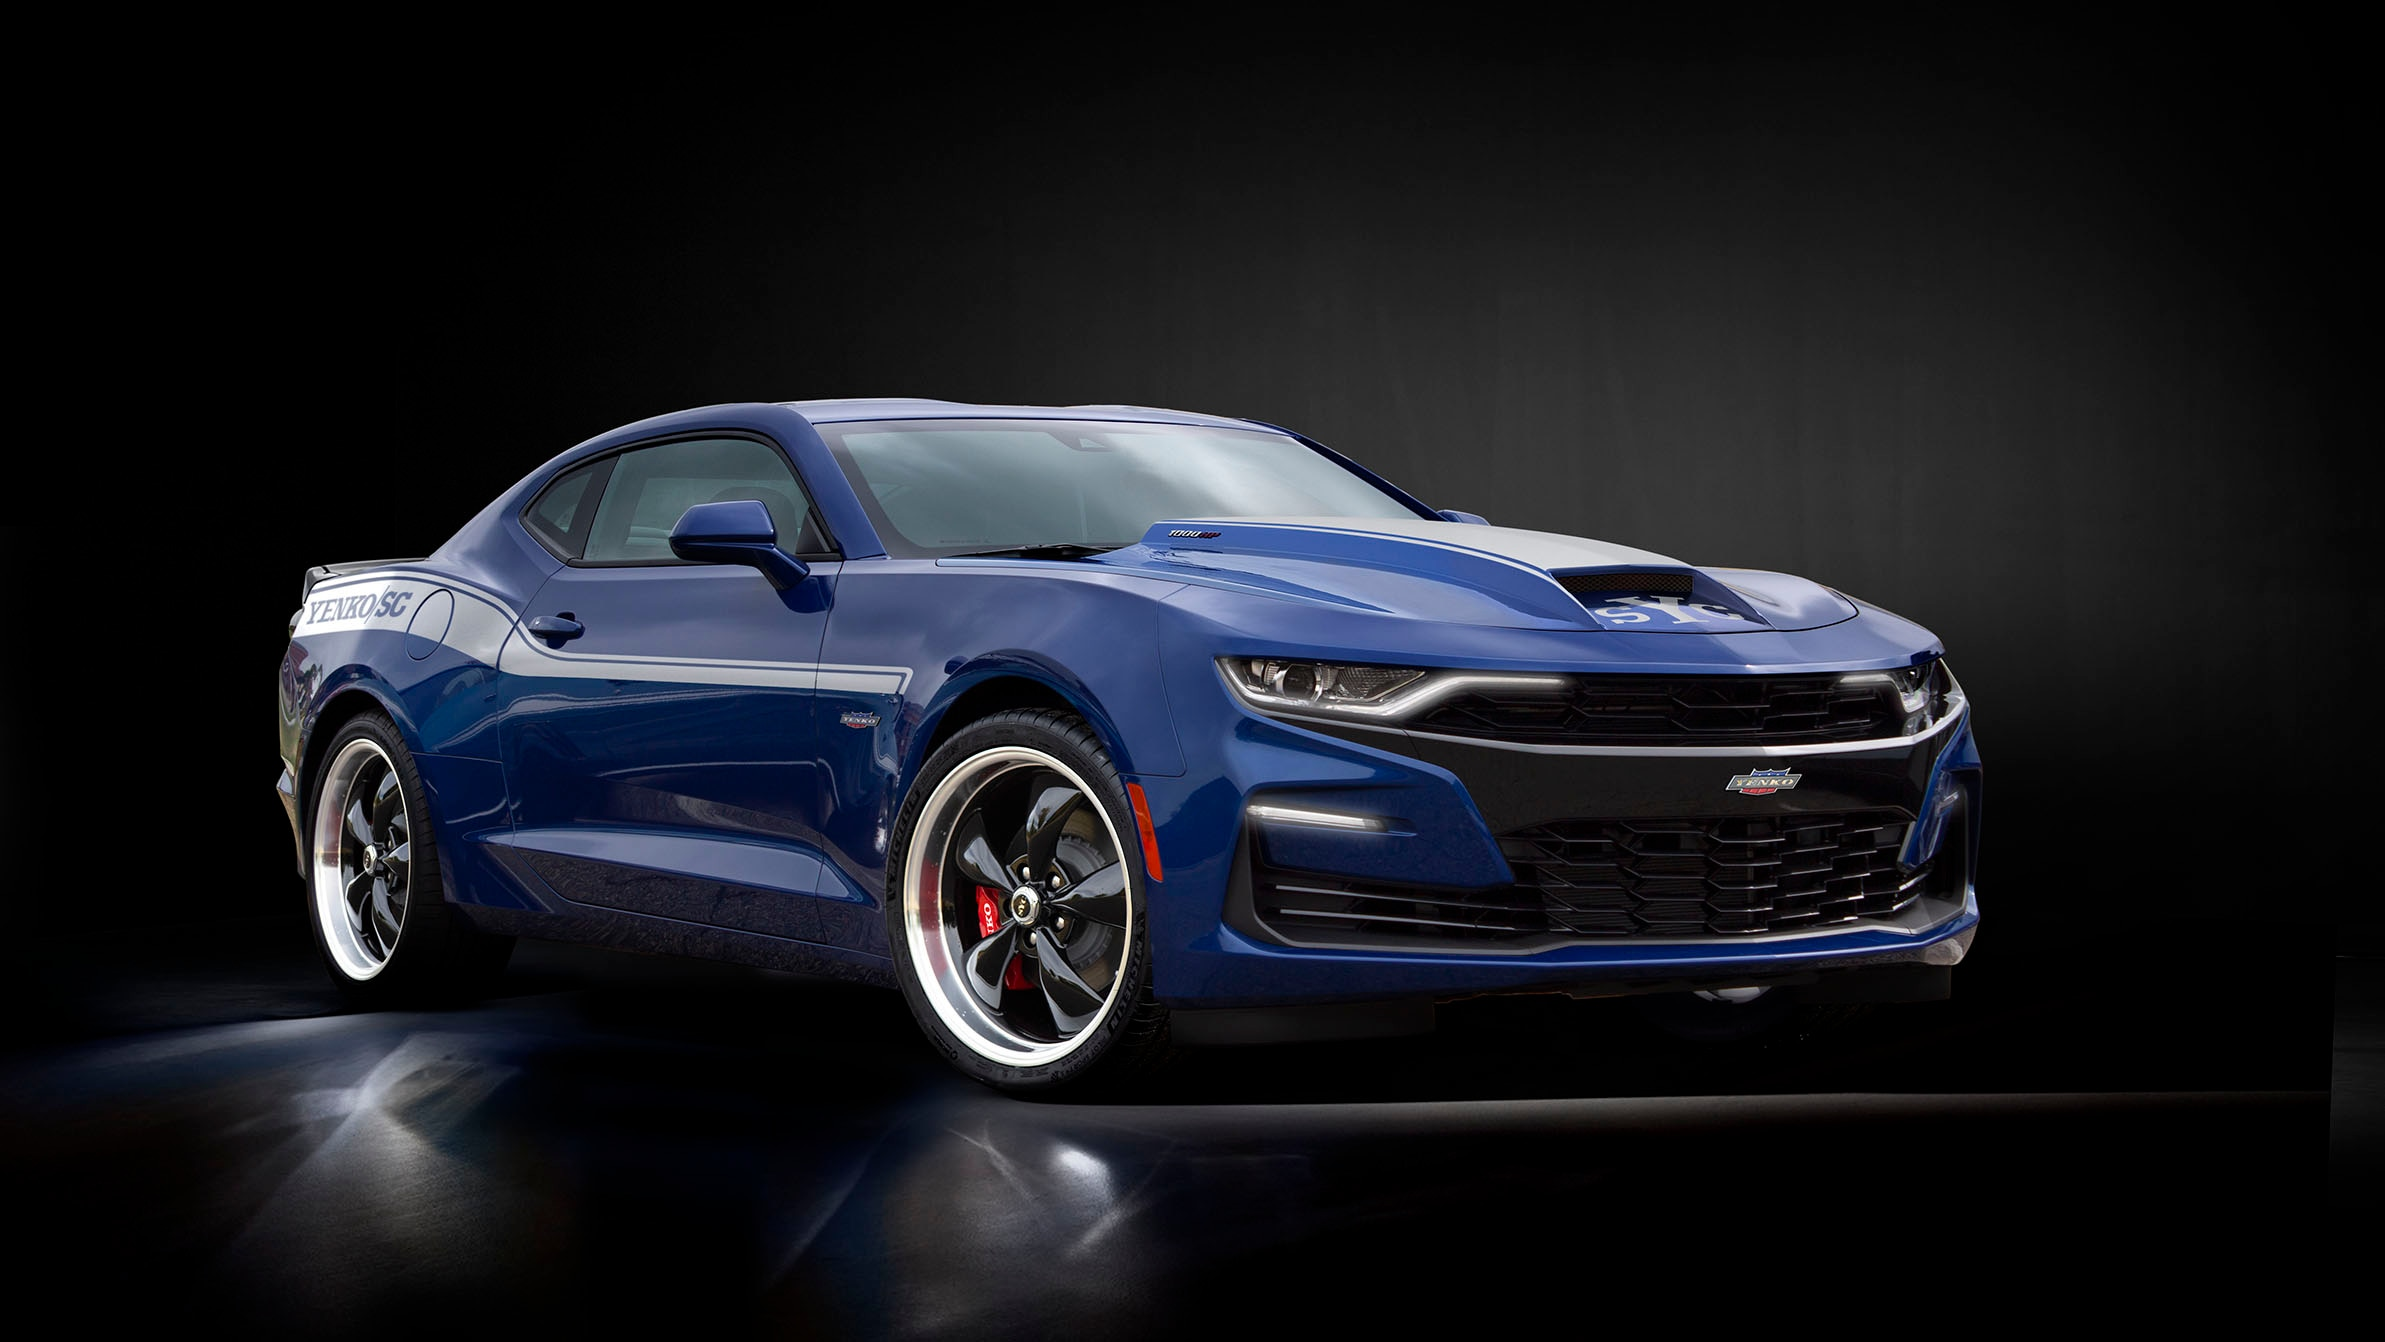 2019 Chevrolet Camaro Yenko/SC Stage 2 Makes 1,000 ...